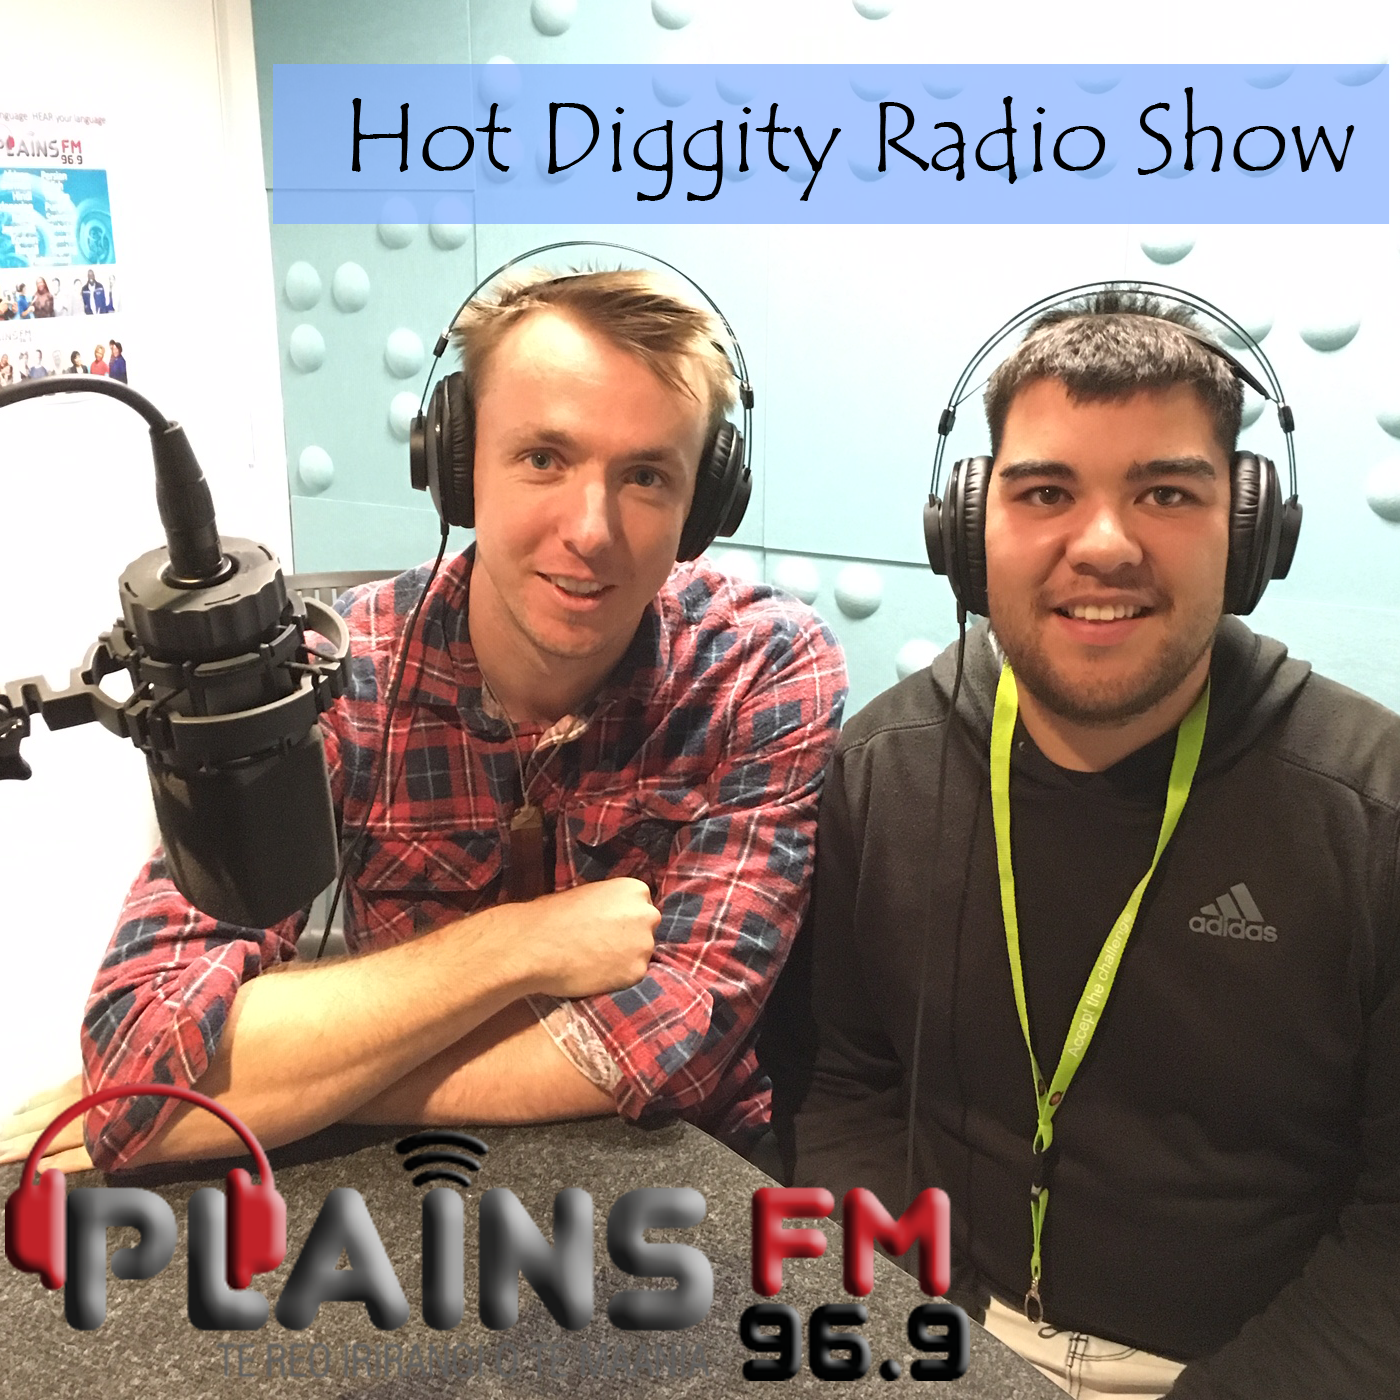 Hot Diggity Radio Show